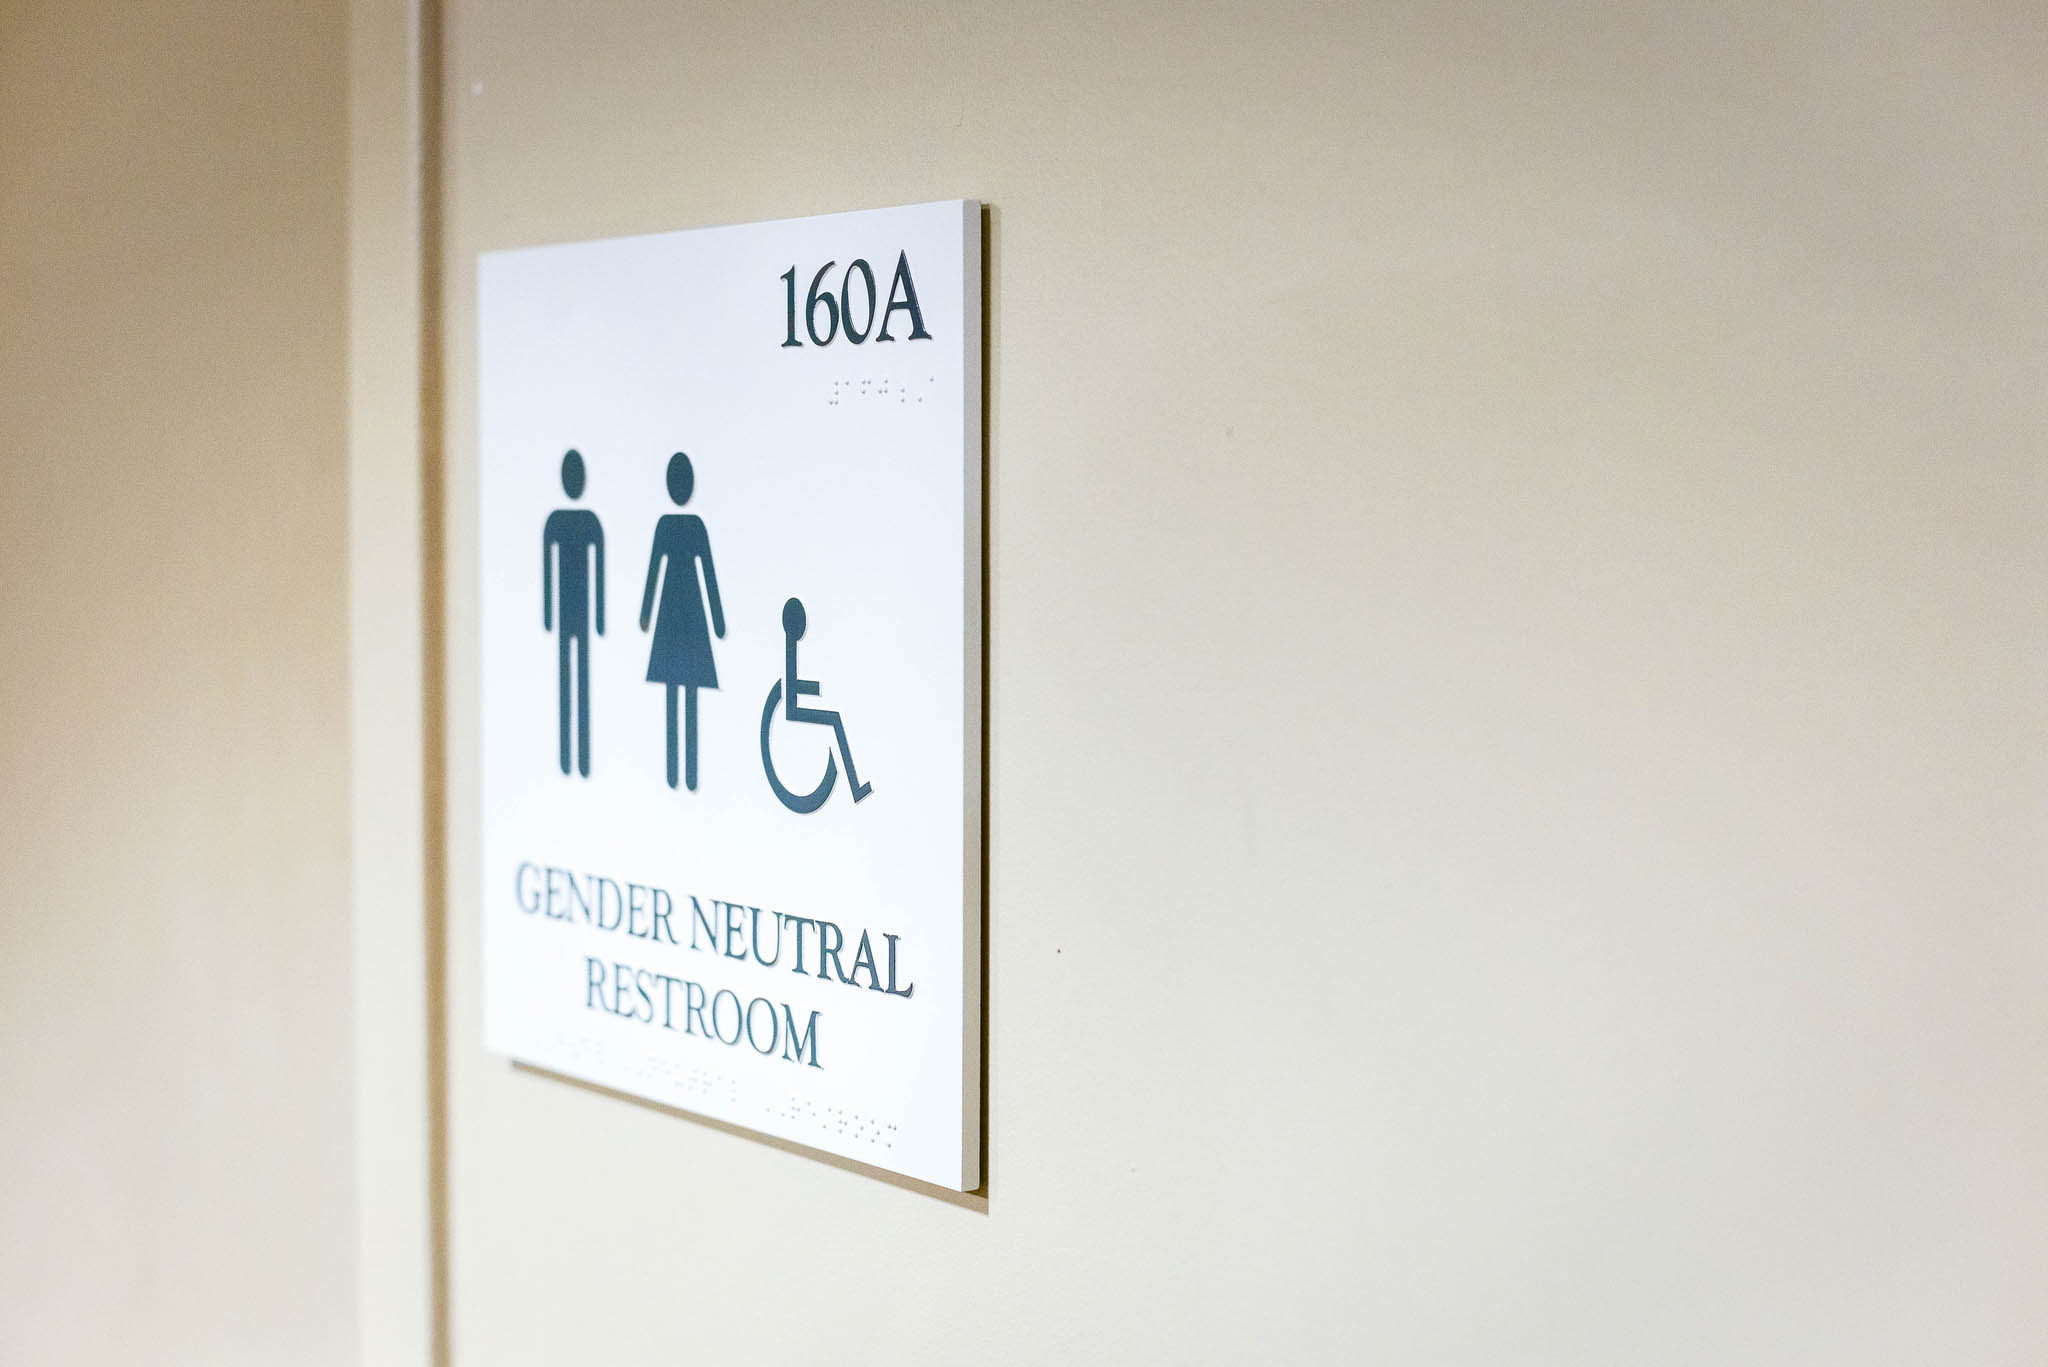 Vsa Calls For Gender Neutral Bathroom Plan The Miscellany News